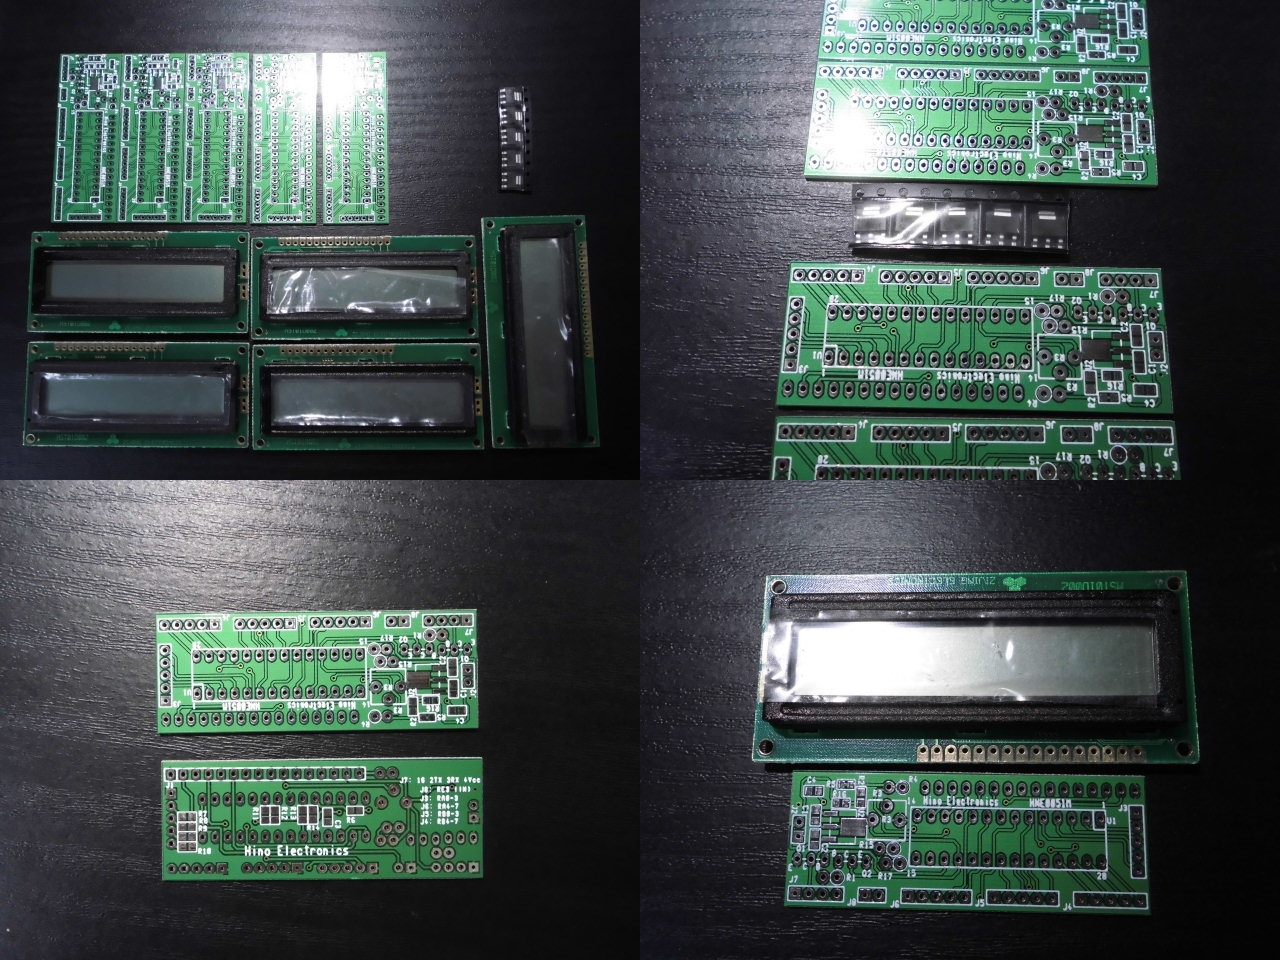 [HCS]汎用LCD基板と16x2LCD(白黒 BL無) 28pin PIC向け 5セット